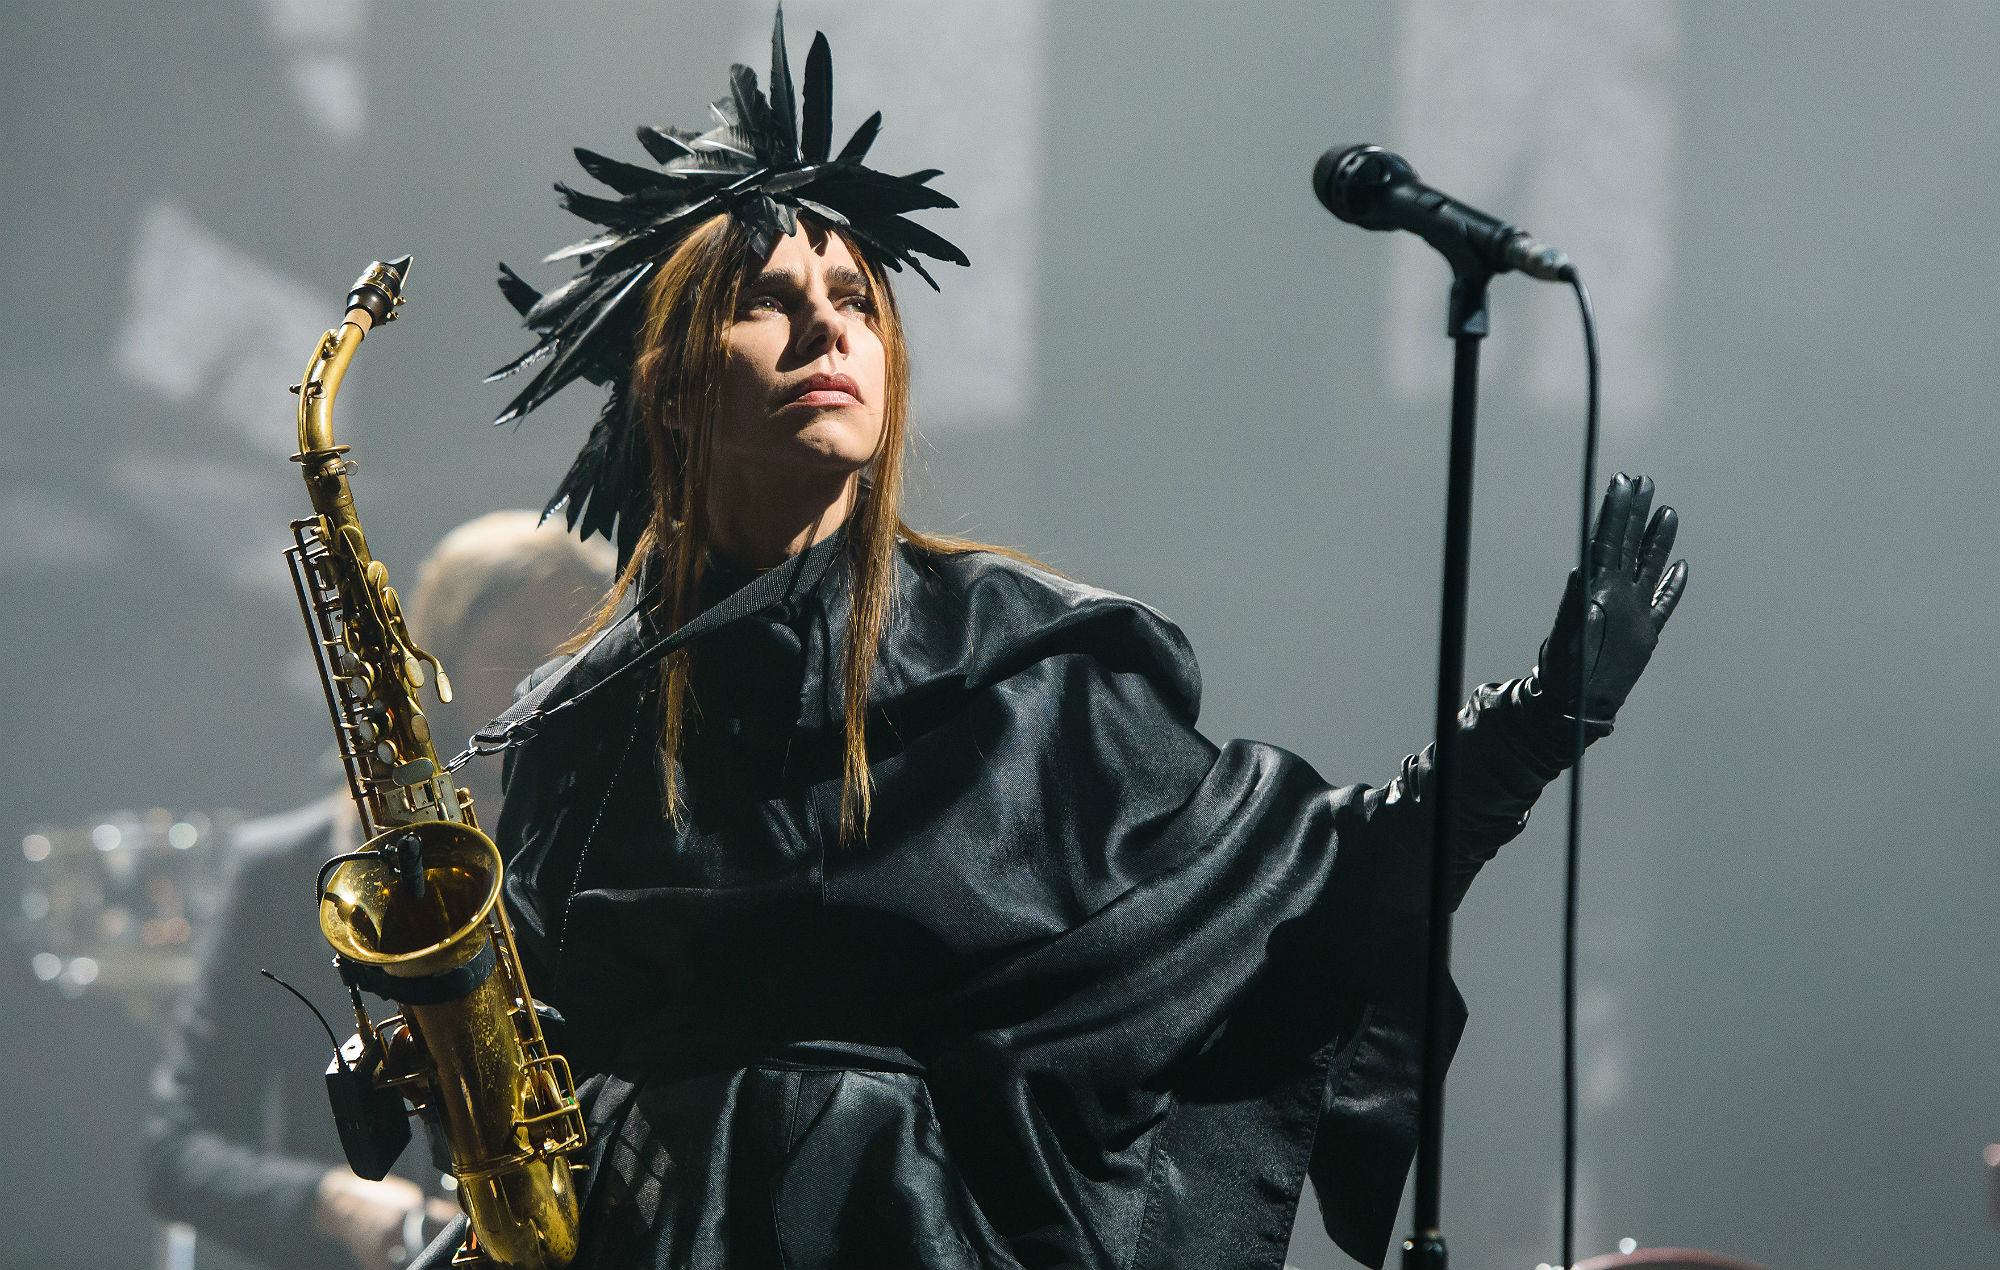 Exclusive: Watch PJ Harvey's video for 'Red Right Hand' from the 'Peaky Blinders' soundtrack